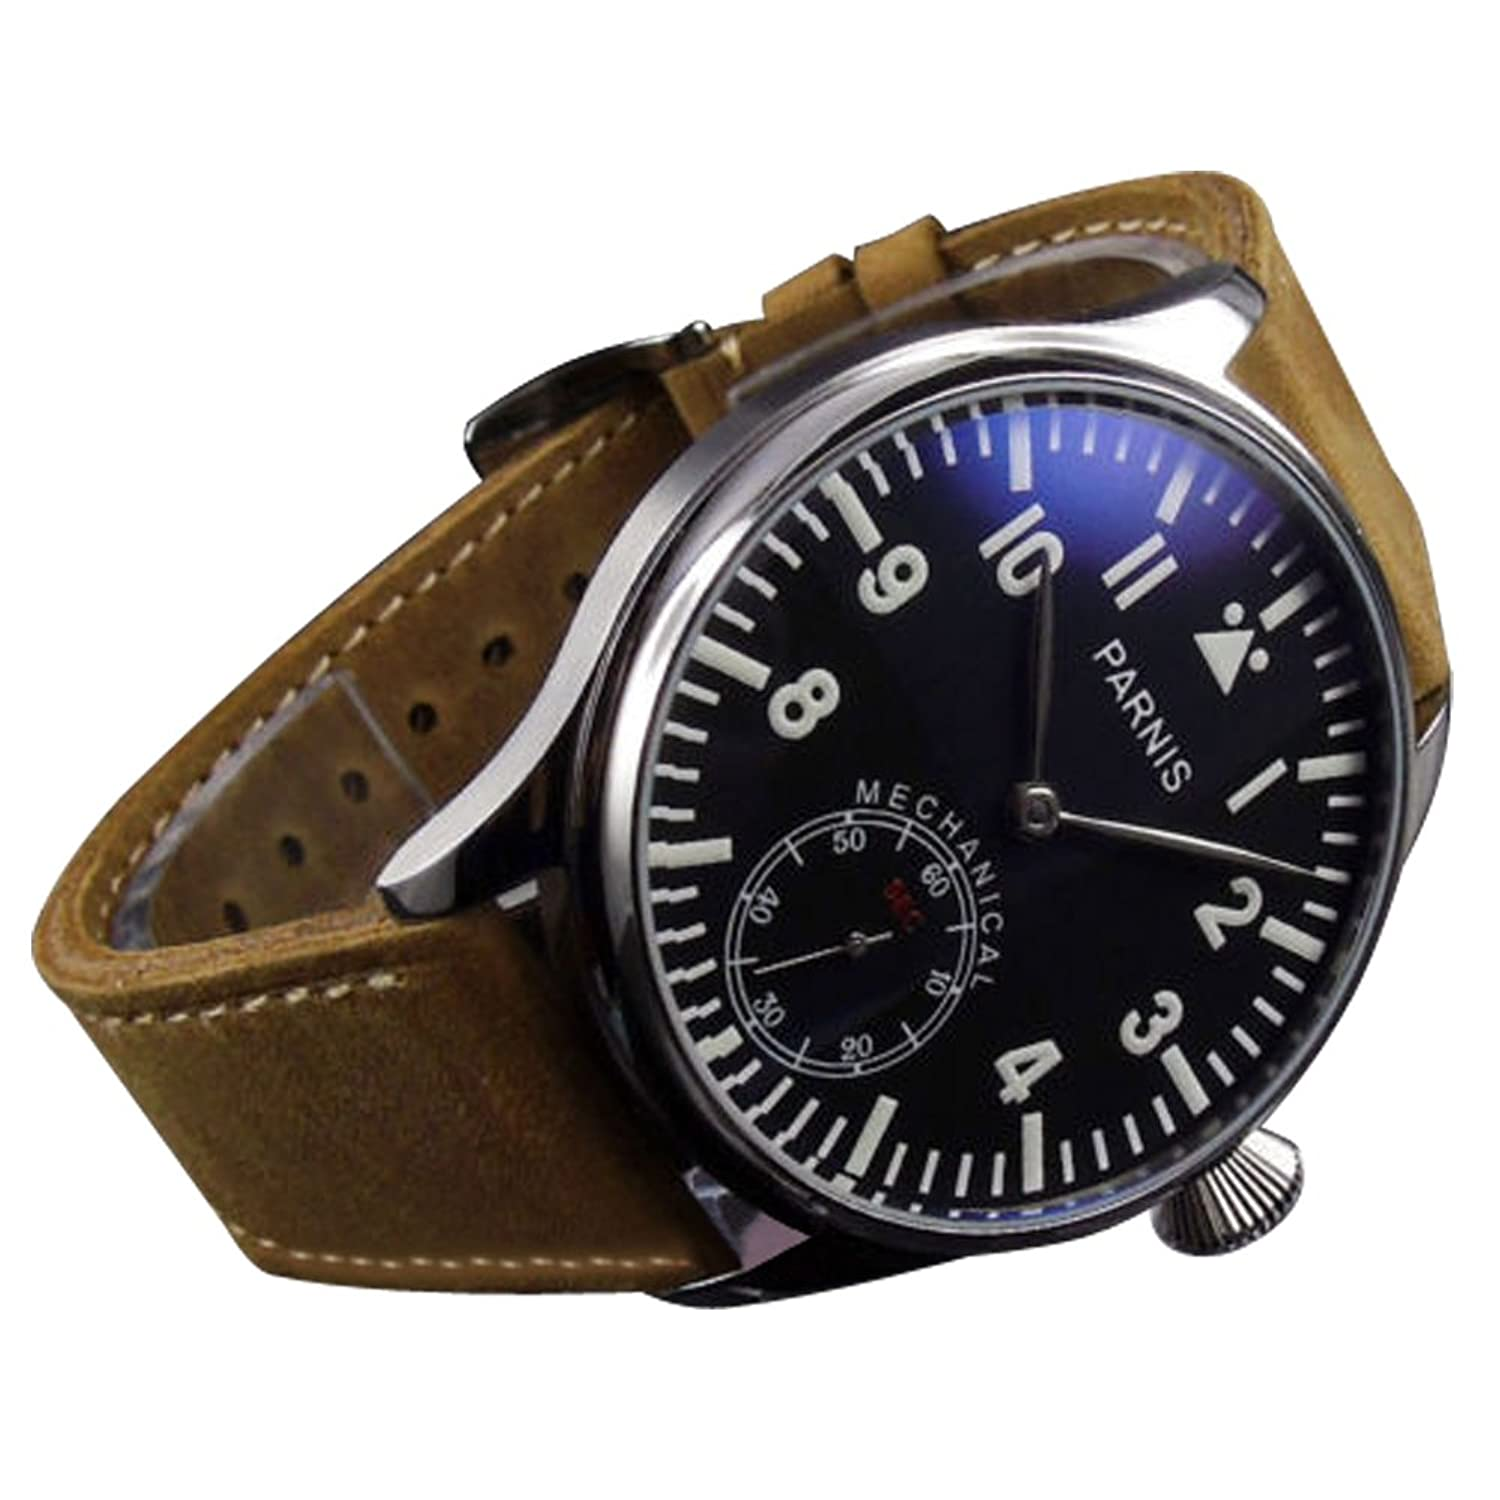 whatswatch 44 mm Parnisブラックダイヤルブルー光6498 Movement Hand Winding Mens Watch pa-0111175 B01LD4CWO8